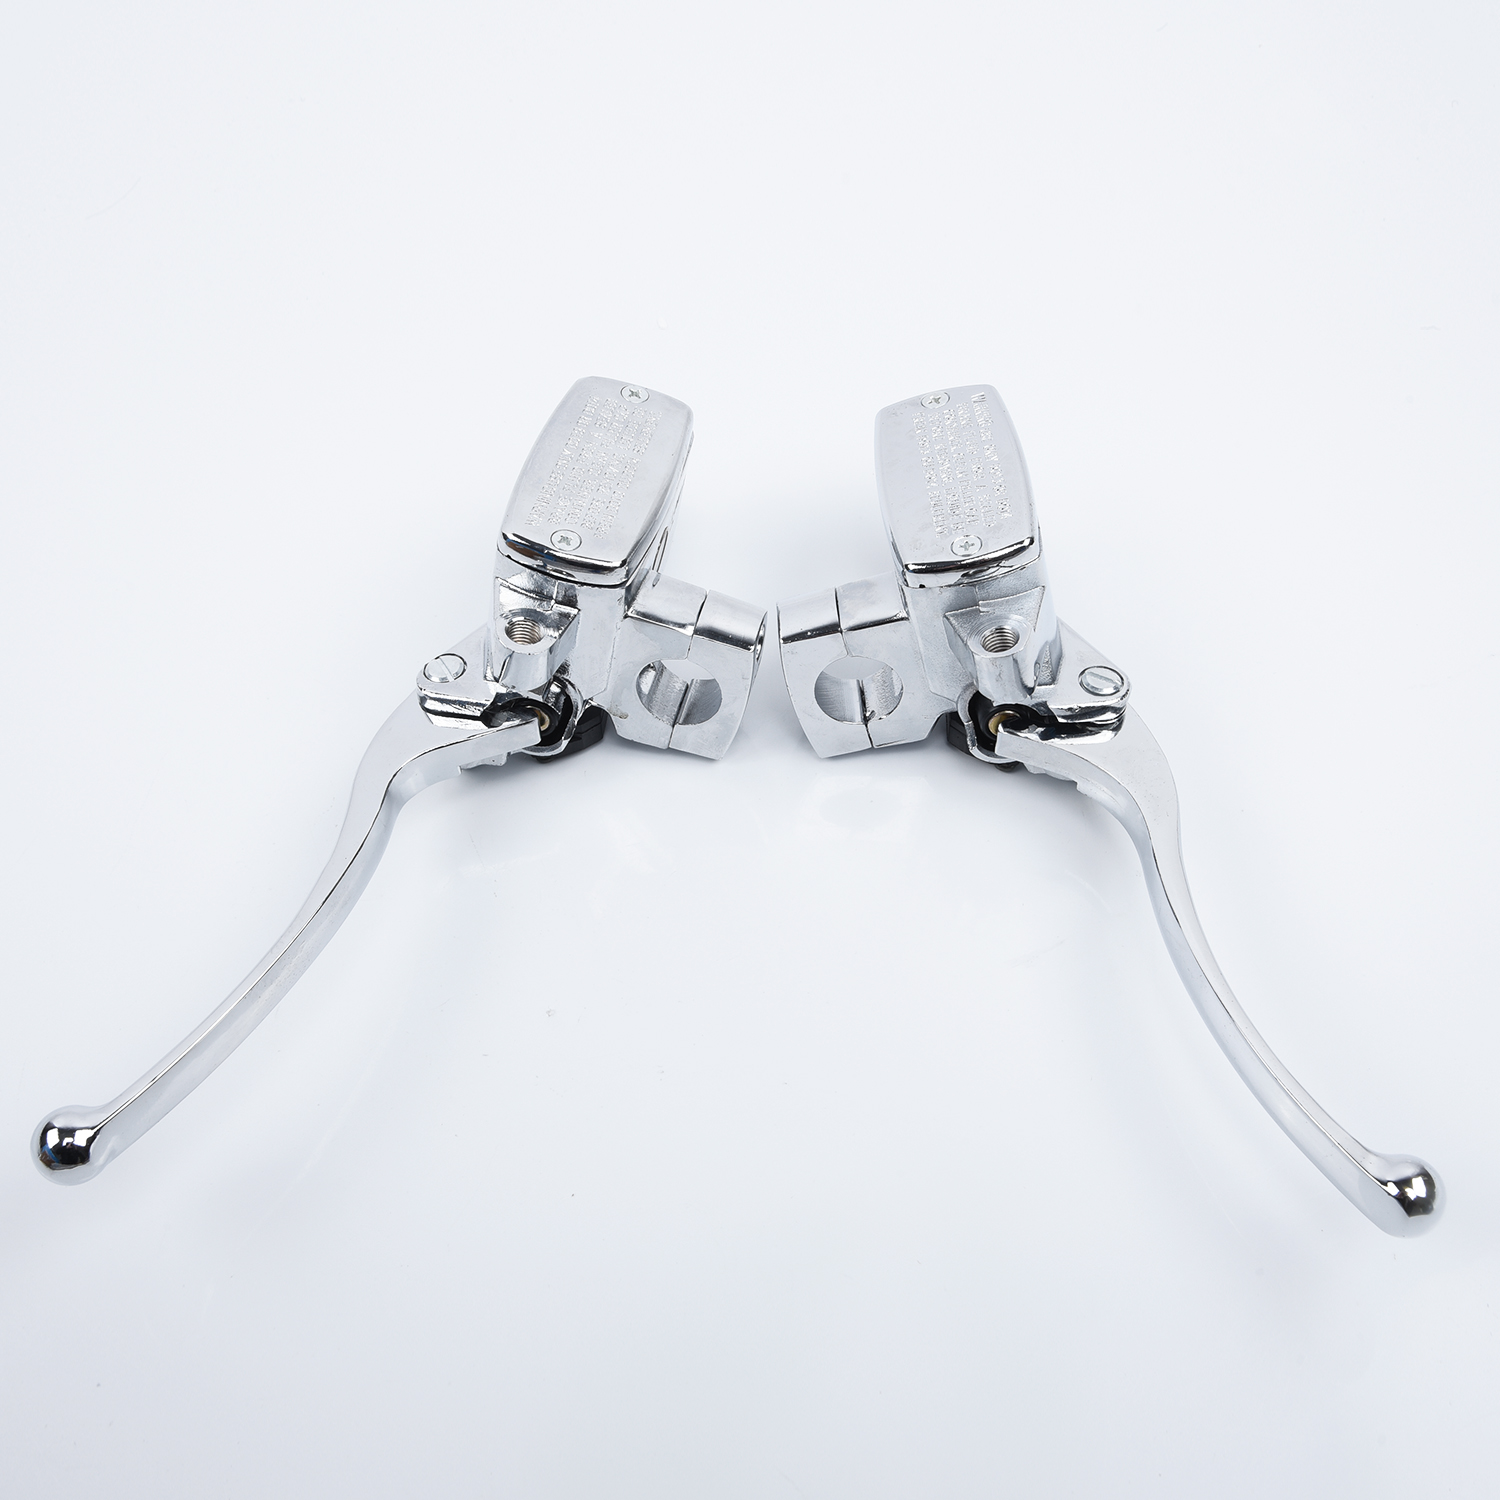 Chrome Brake Master Cylinder Clutch Levers For Suzuki Intruder 800 1400 1500  Improving The Safety And Durability